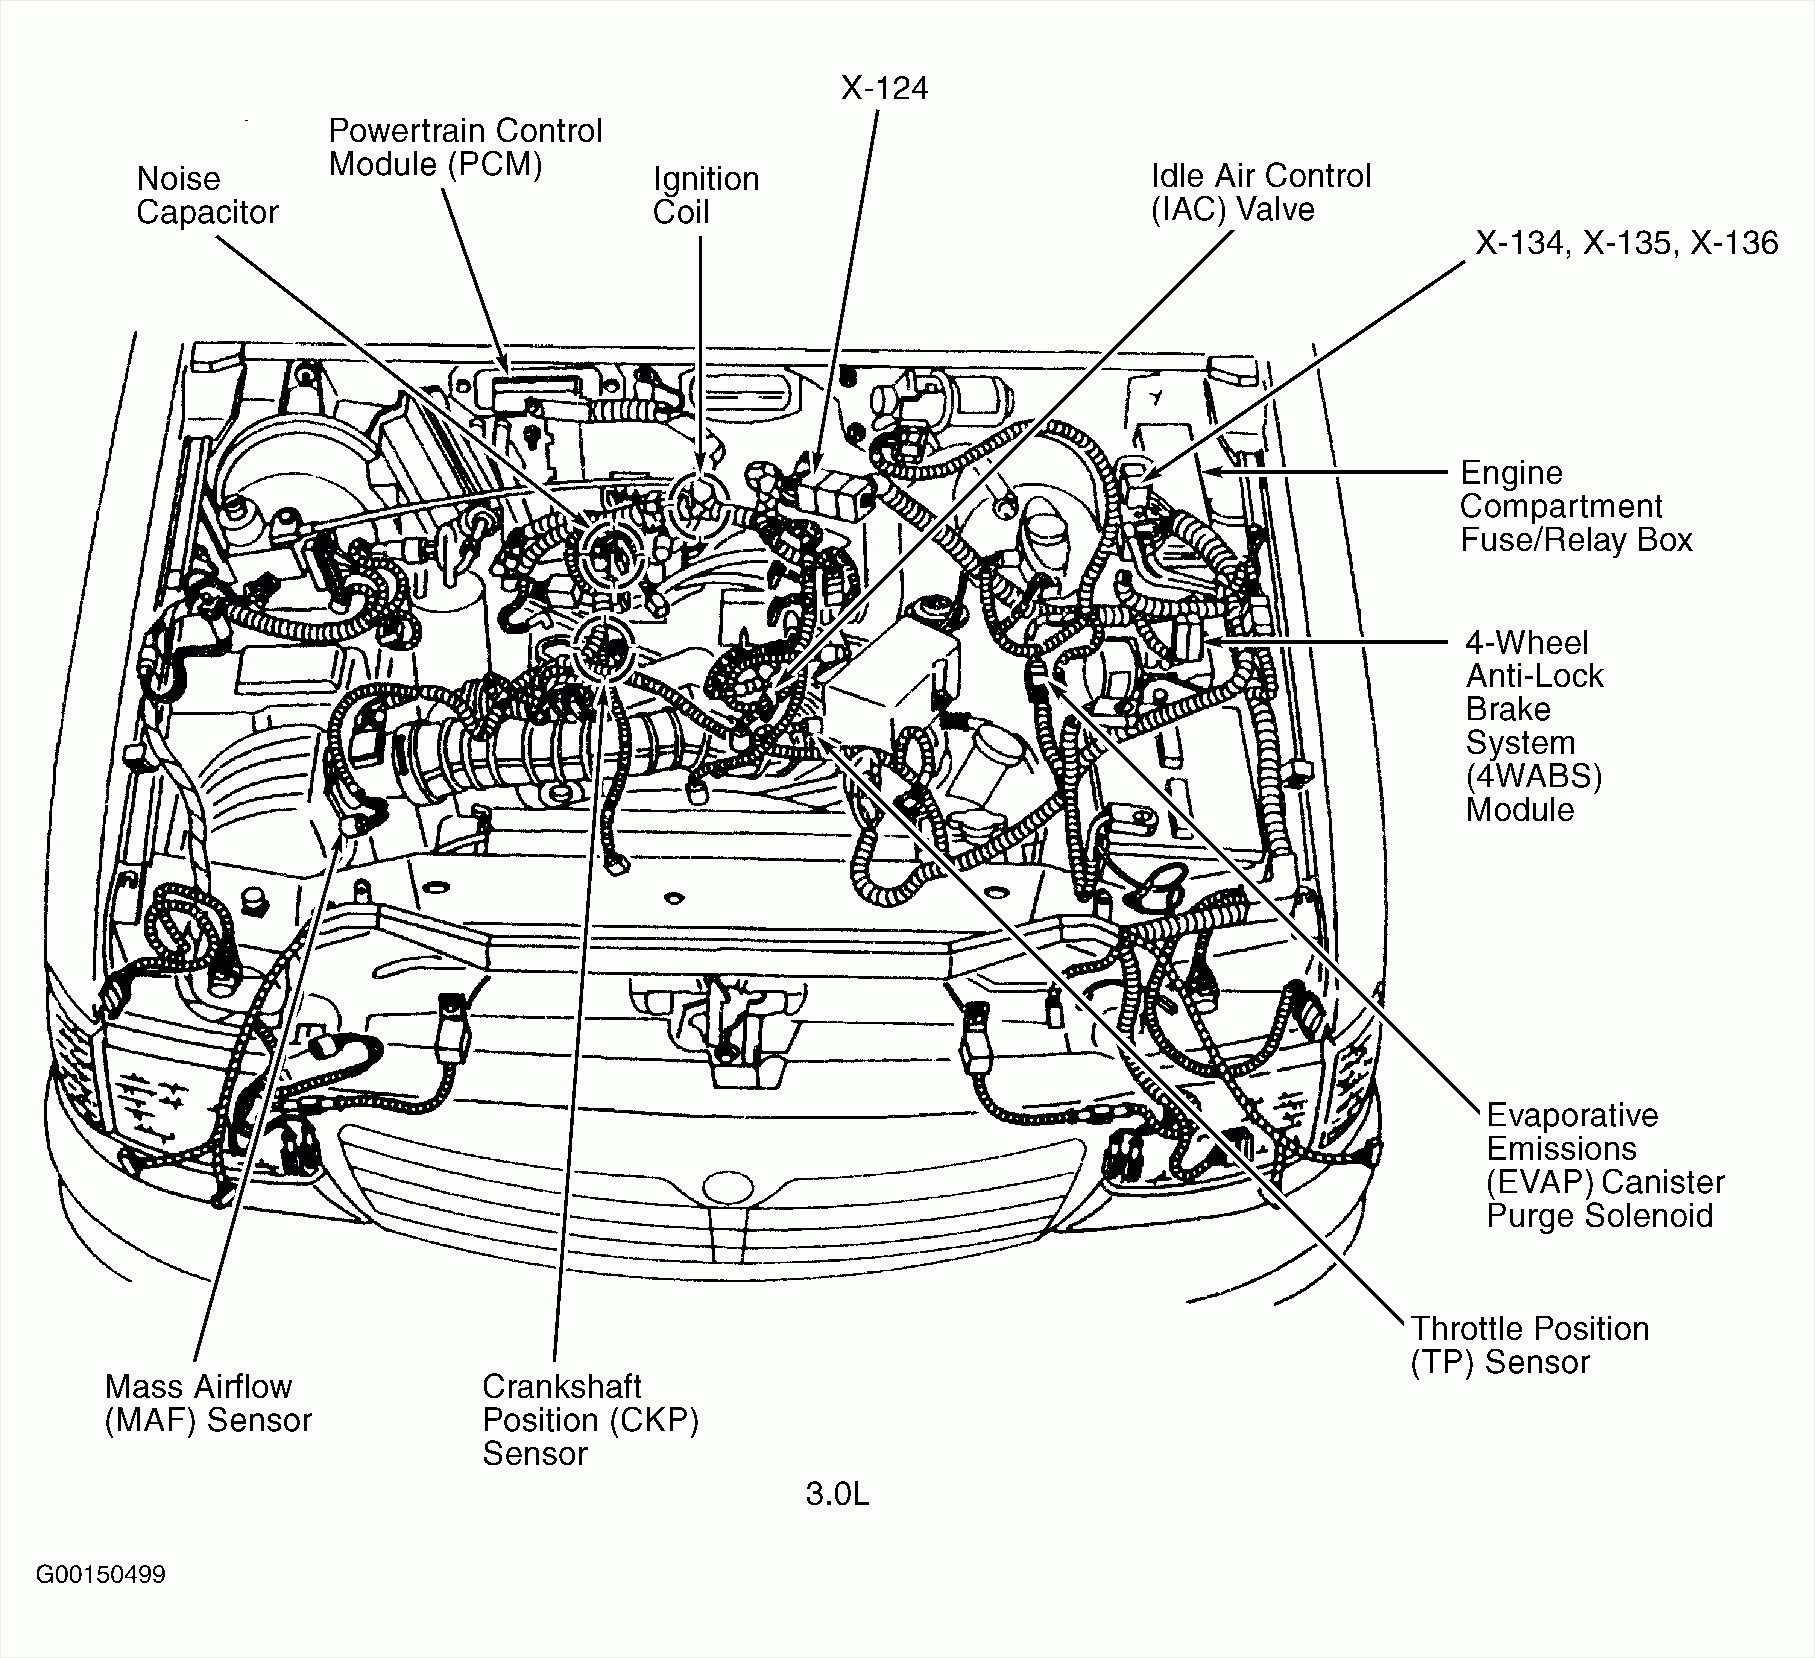 2010 ford Fusion Engine Diagram ford Escape 3 0 Engine Diagram Of 2010 ford Fusion Engine Diagram